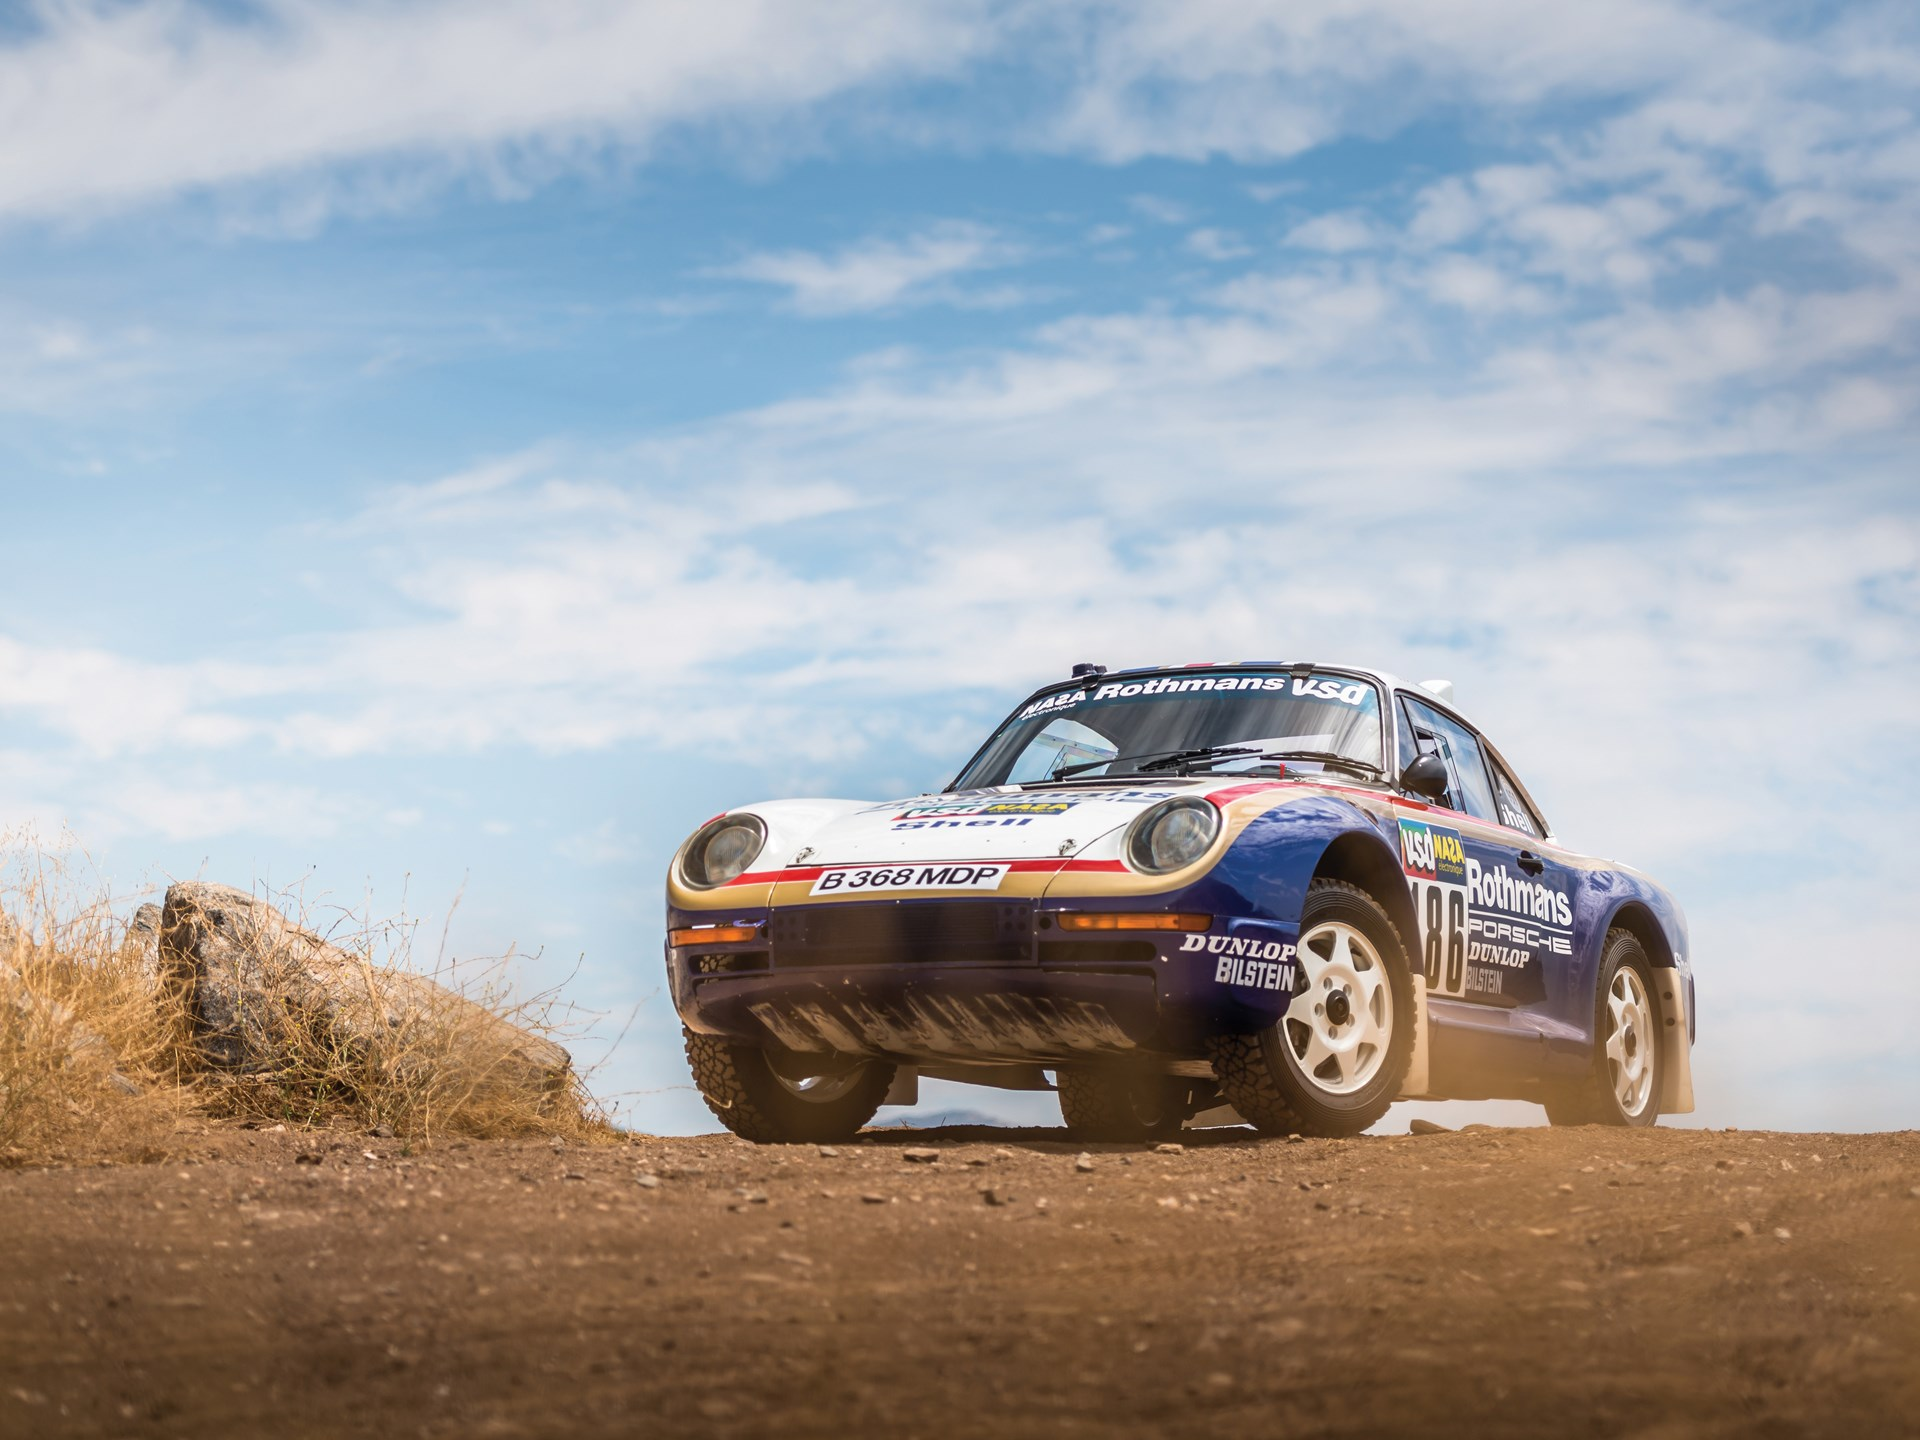 1985 Porsche 959 Paris-Dakar low 3/4 hill